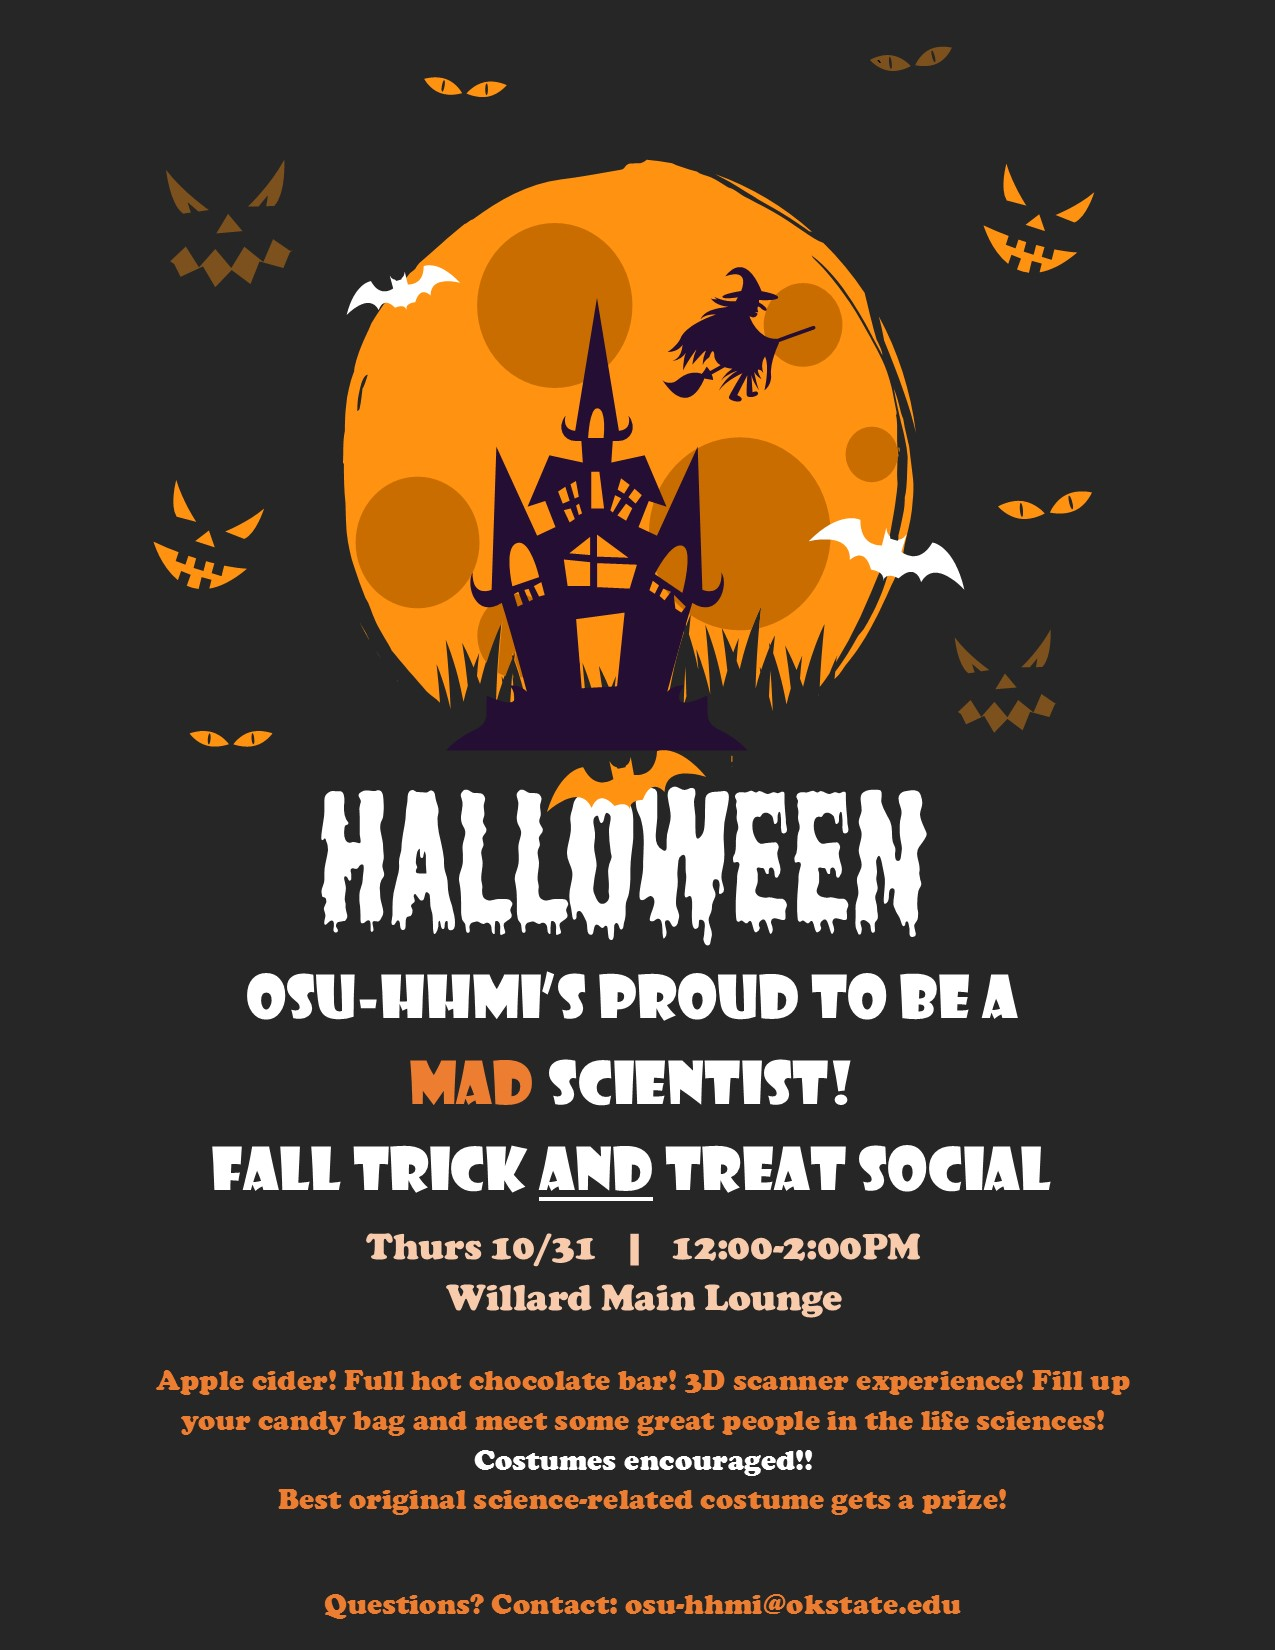 Have fun this Halloween at our Fall Social!